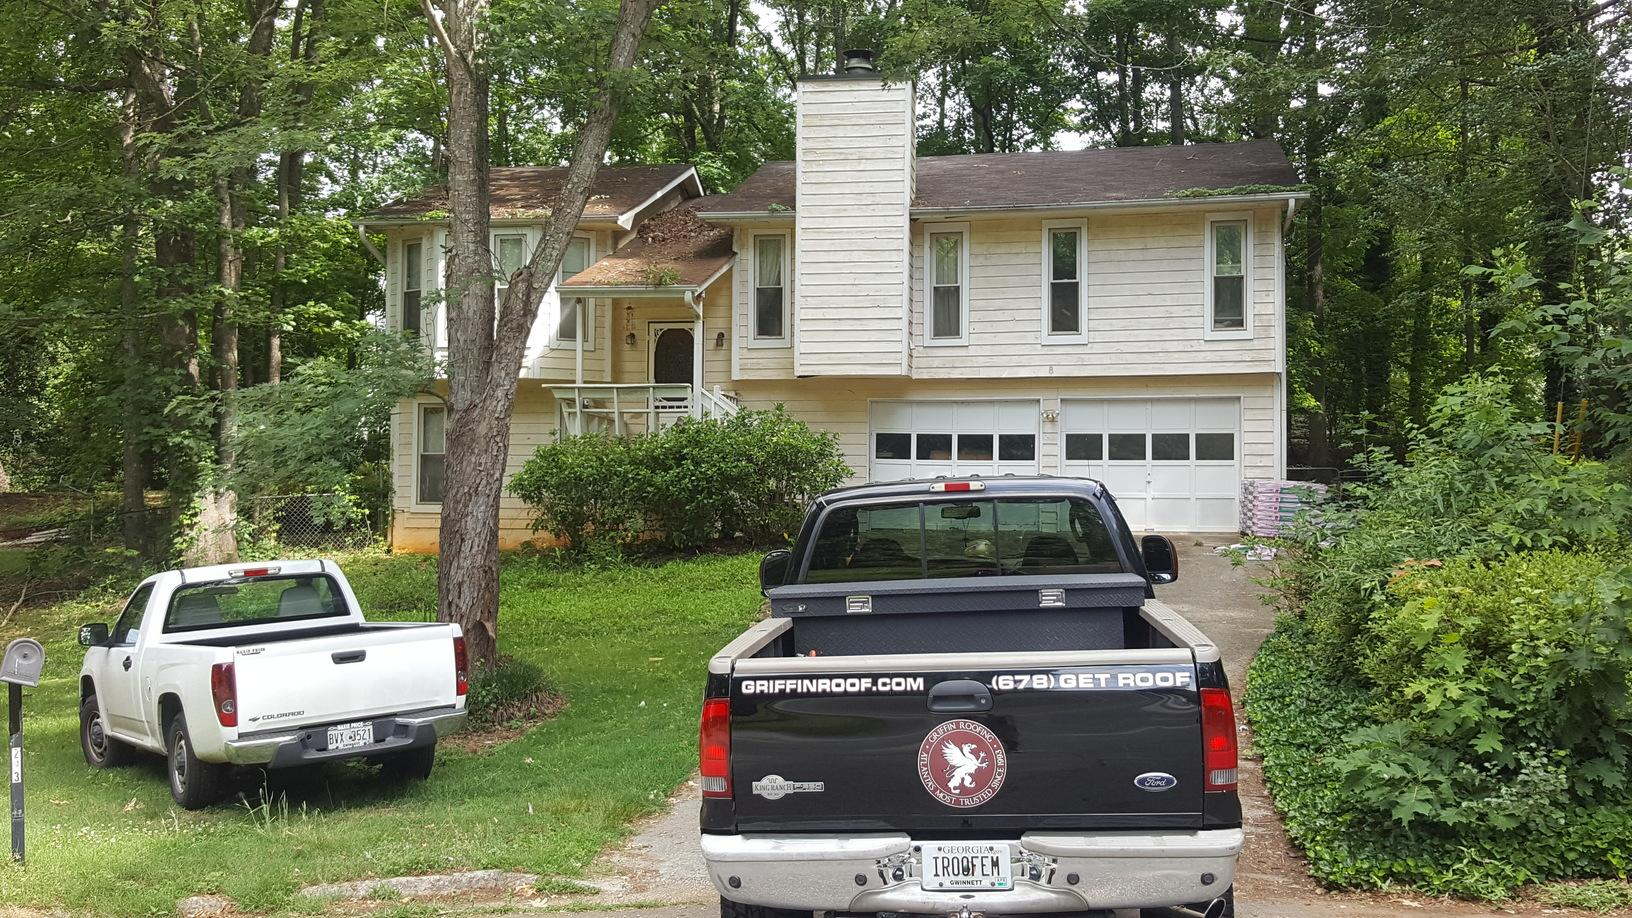 New roof and gutter replacement in Lawrenceville, GA - Before Photo